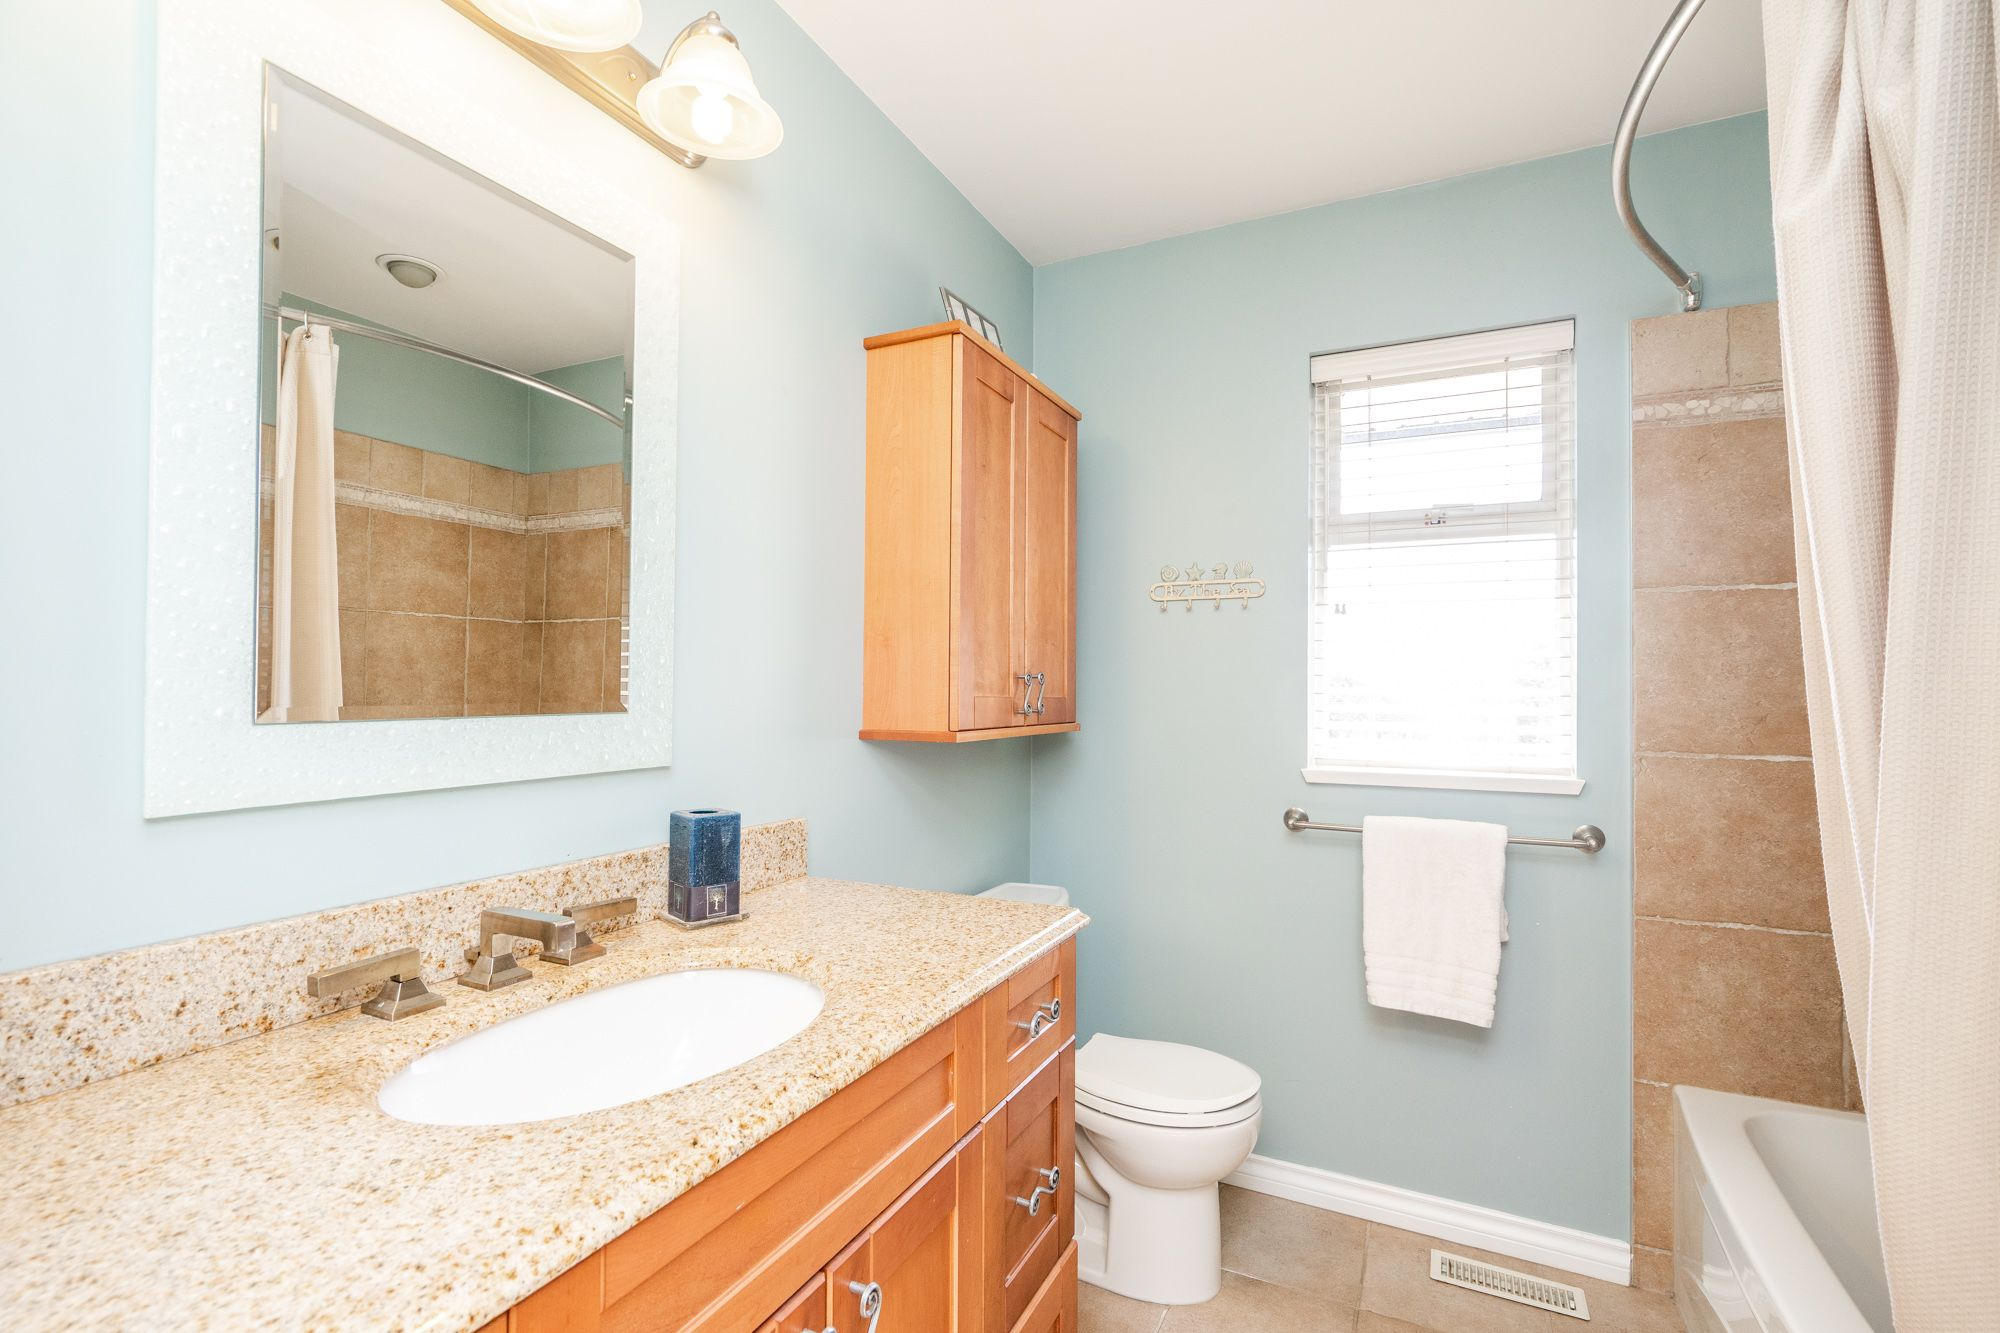 """Photo 26: Photos: 8448 213 Street in Langley: Walnut Grove House for sale in """"Forest Hills"""" : MLS®# R2259409"""